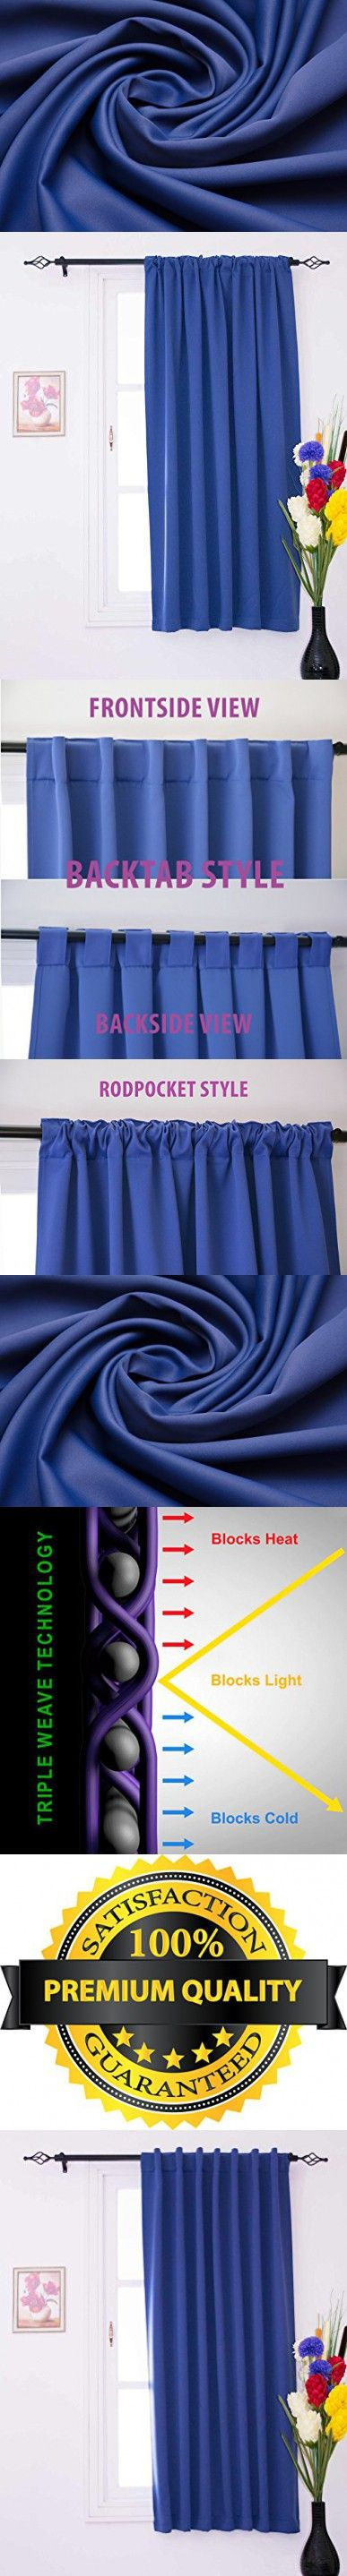 Luxury Homes Premium Quality Thermal Insulated Window Blackout Curtains With Rod Pocket / Back Tab - Single Panel - Free Matching Tieback Worth $4.99 Included (52W x 63L Inch, Navy Blue)